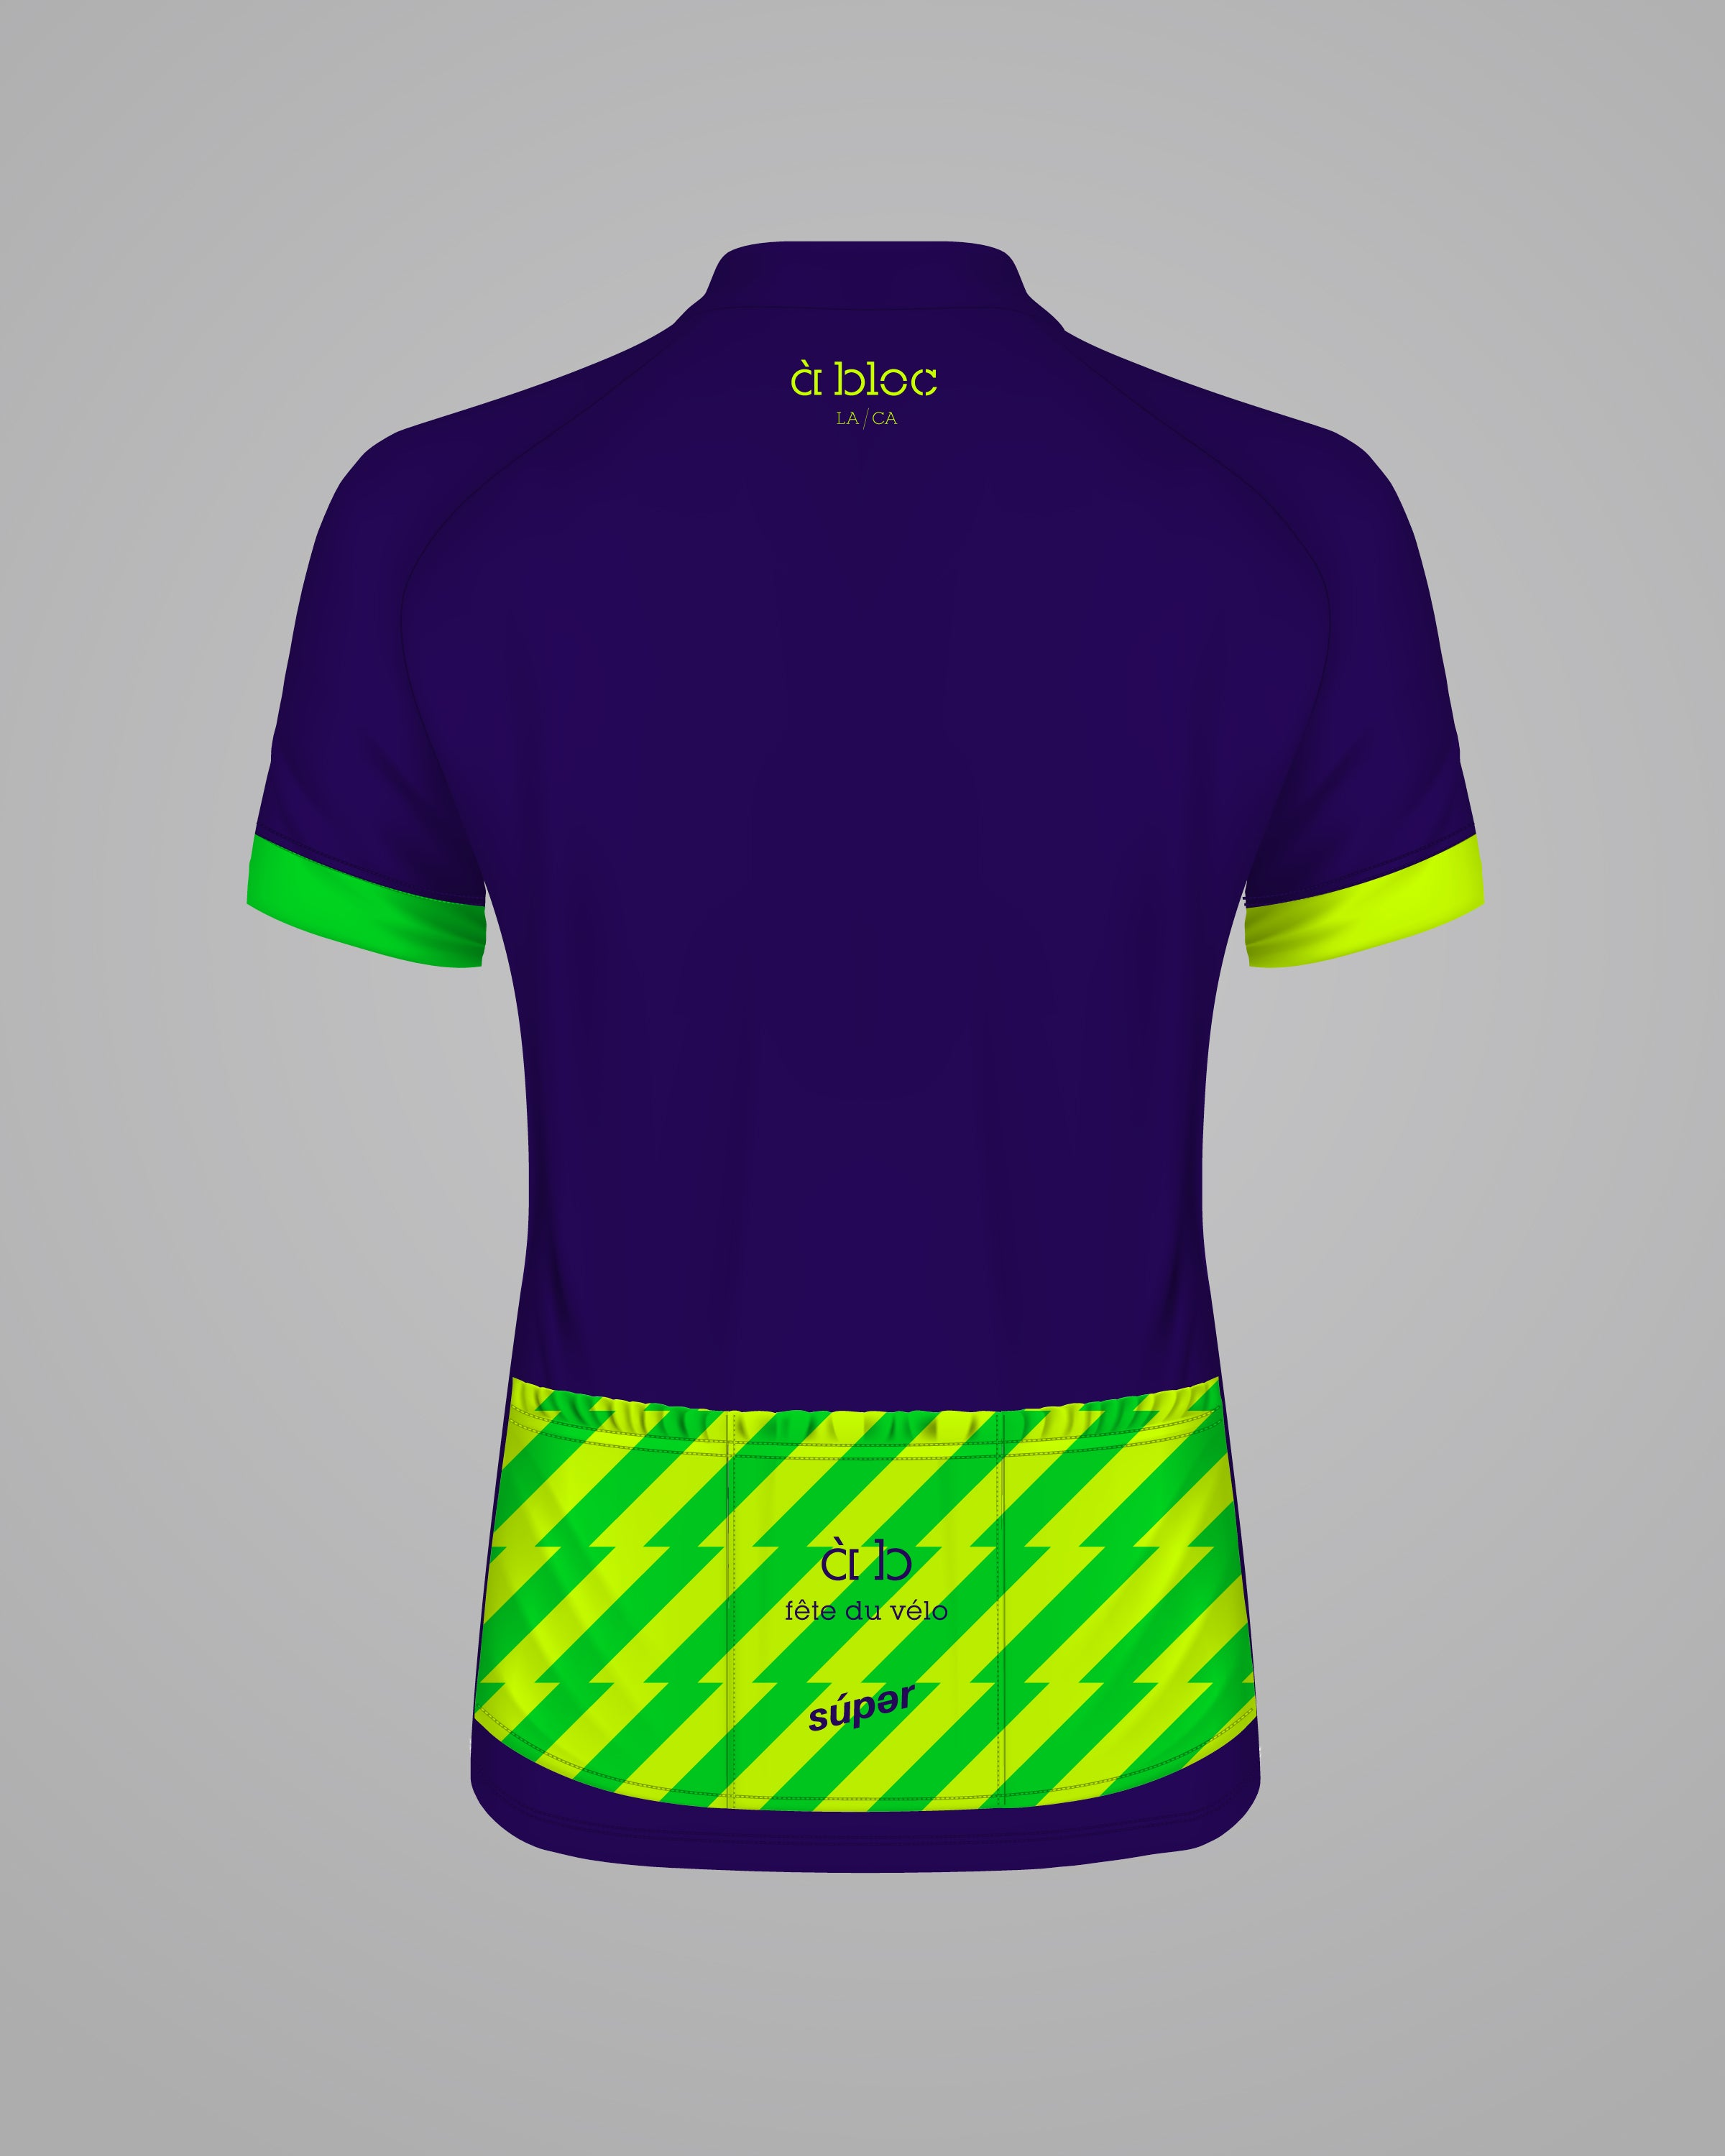 À BLOC - FÊTE DU VÉLO - Limited Edition Unisex Cycling Jersey -  SOLD OUT